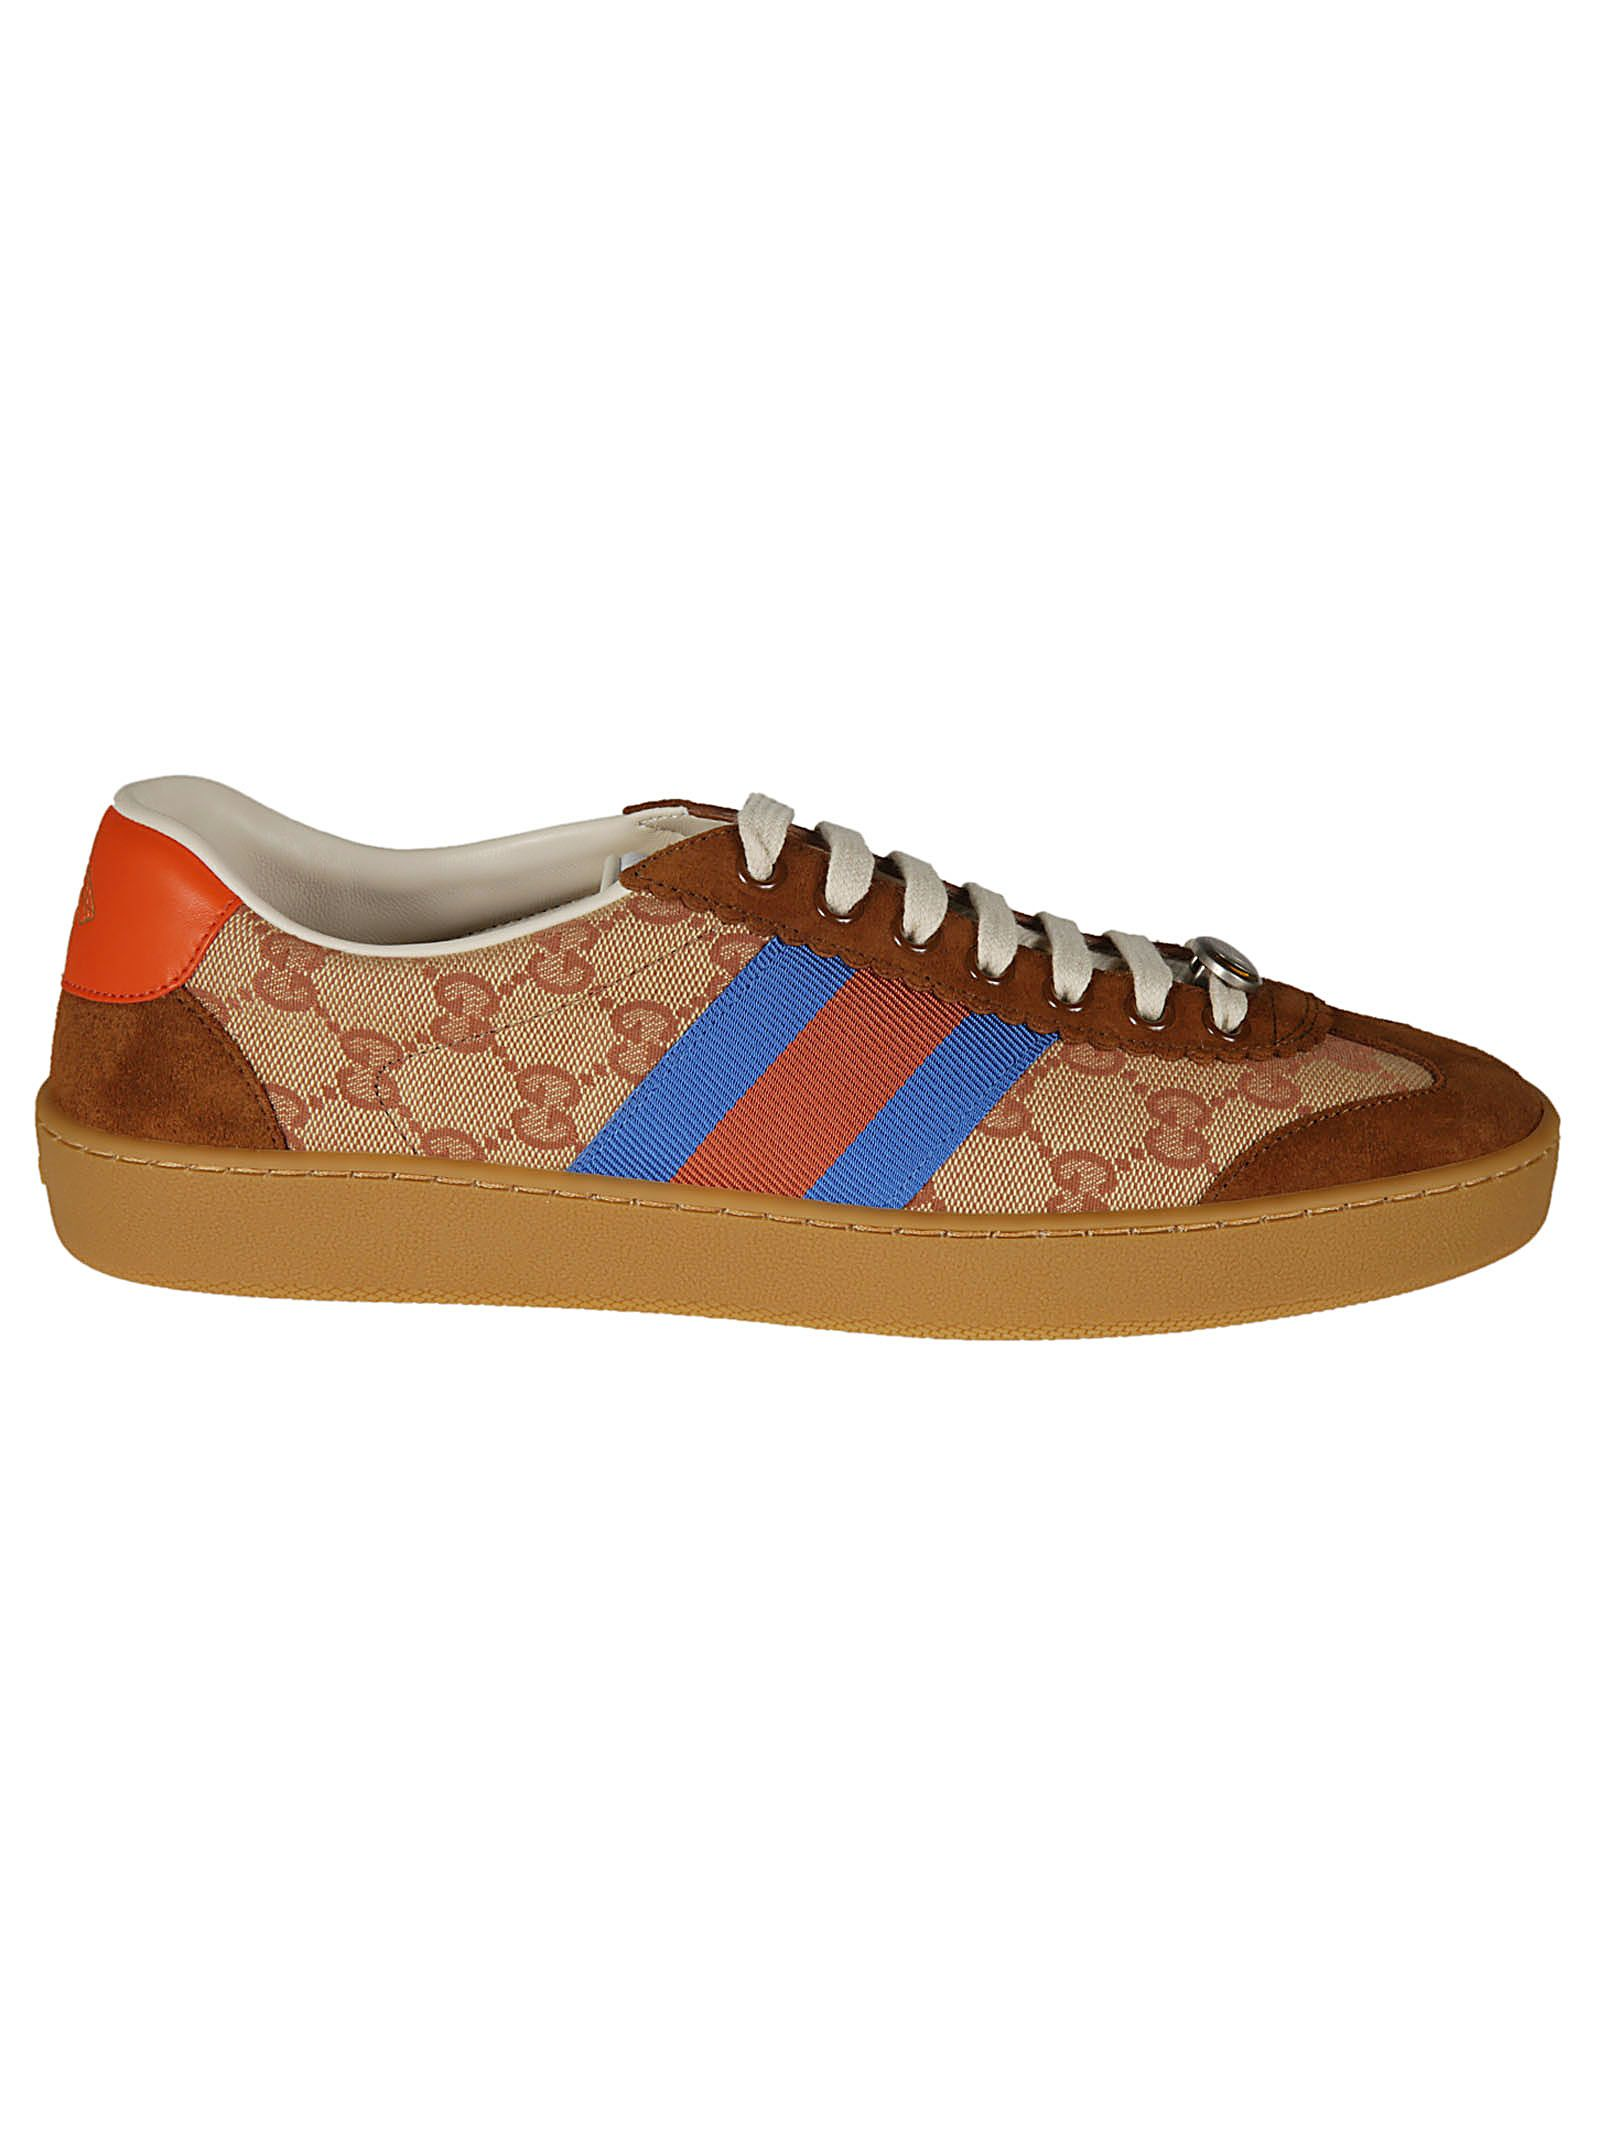 Gucci Web-Striped Canvas & Suede Sneakers - Brown Size 12 M In Blue